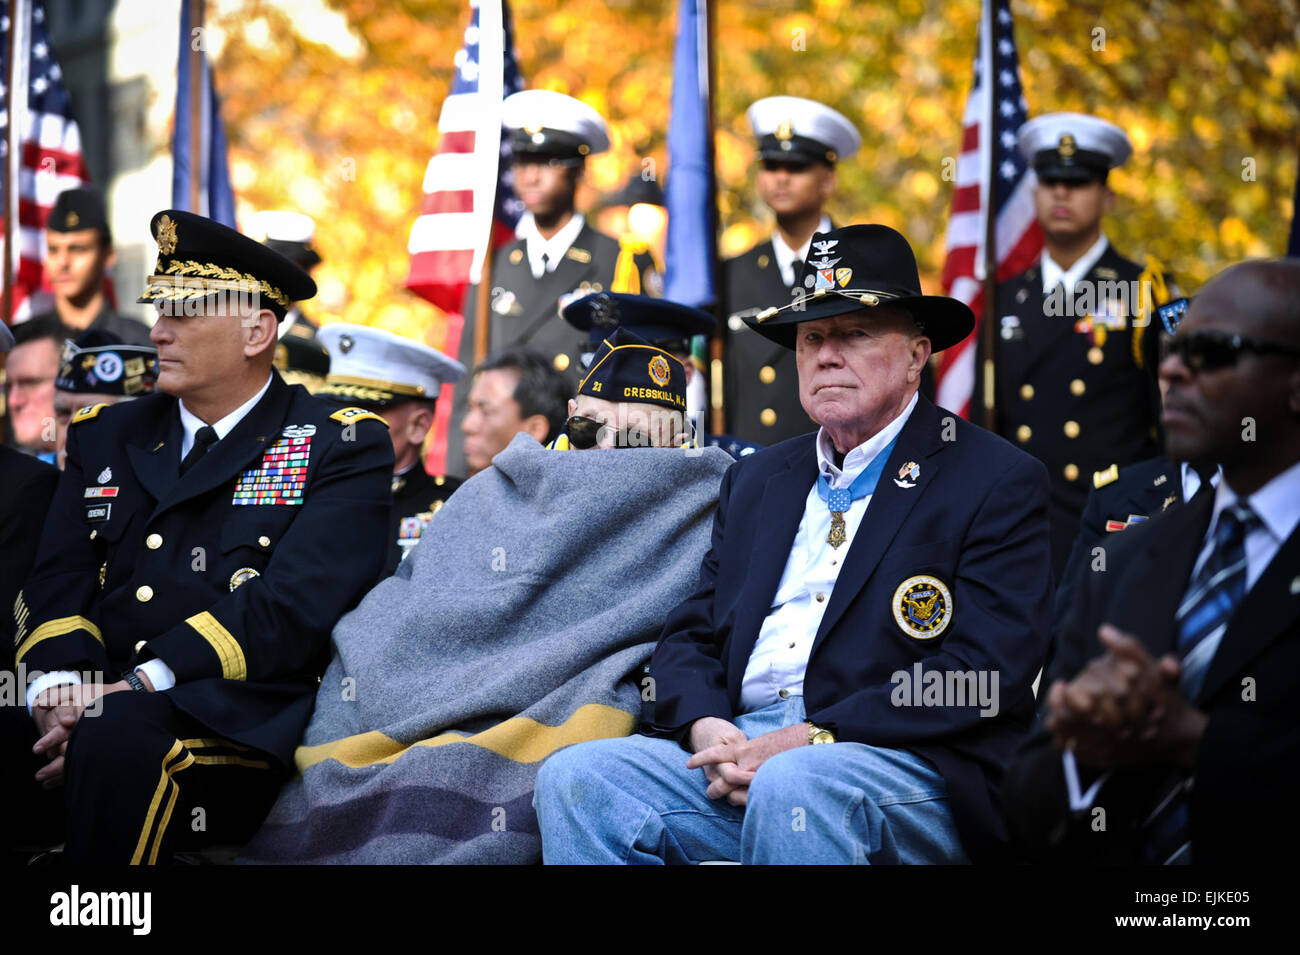 Retired Army Col. Bruce P. Crandall, right, and Nicholas Oresko, center, both recipients of the Medal of Honor, attend Veterans Day activities at Madison Square Park in New York City, New York honoring war veterans Nov. 11, 2011.  Oresko is the oldest living Medal of Honor recipient.  Staff Sgt. Teddy Wade Stock Photo